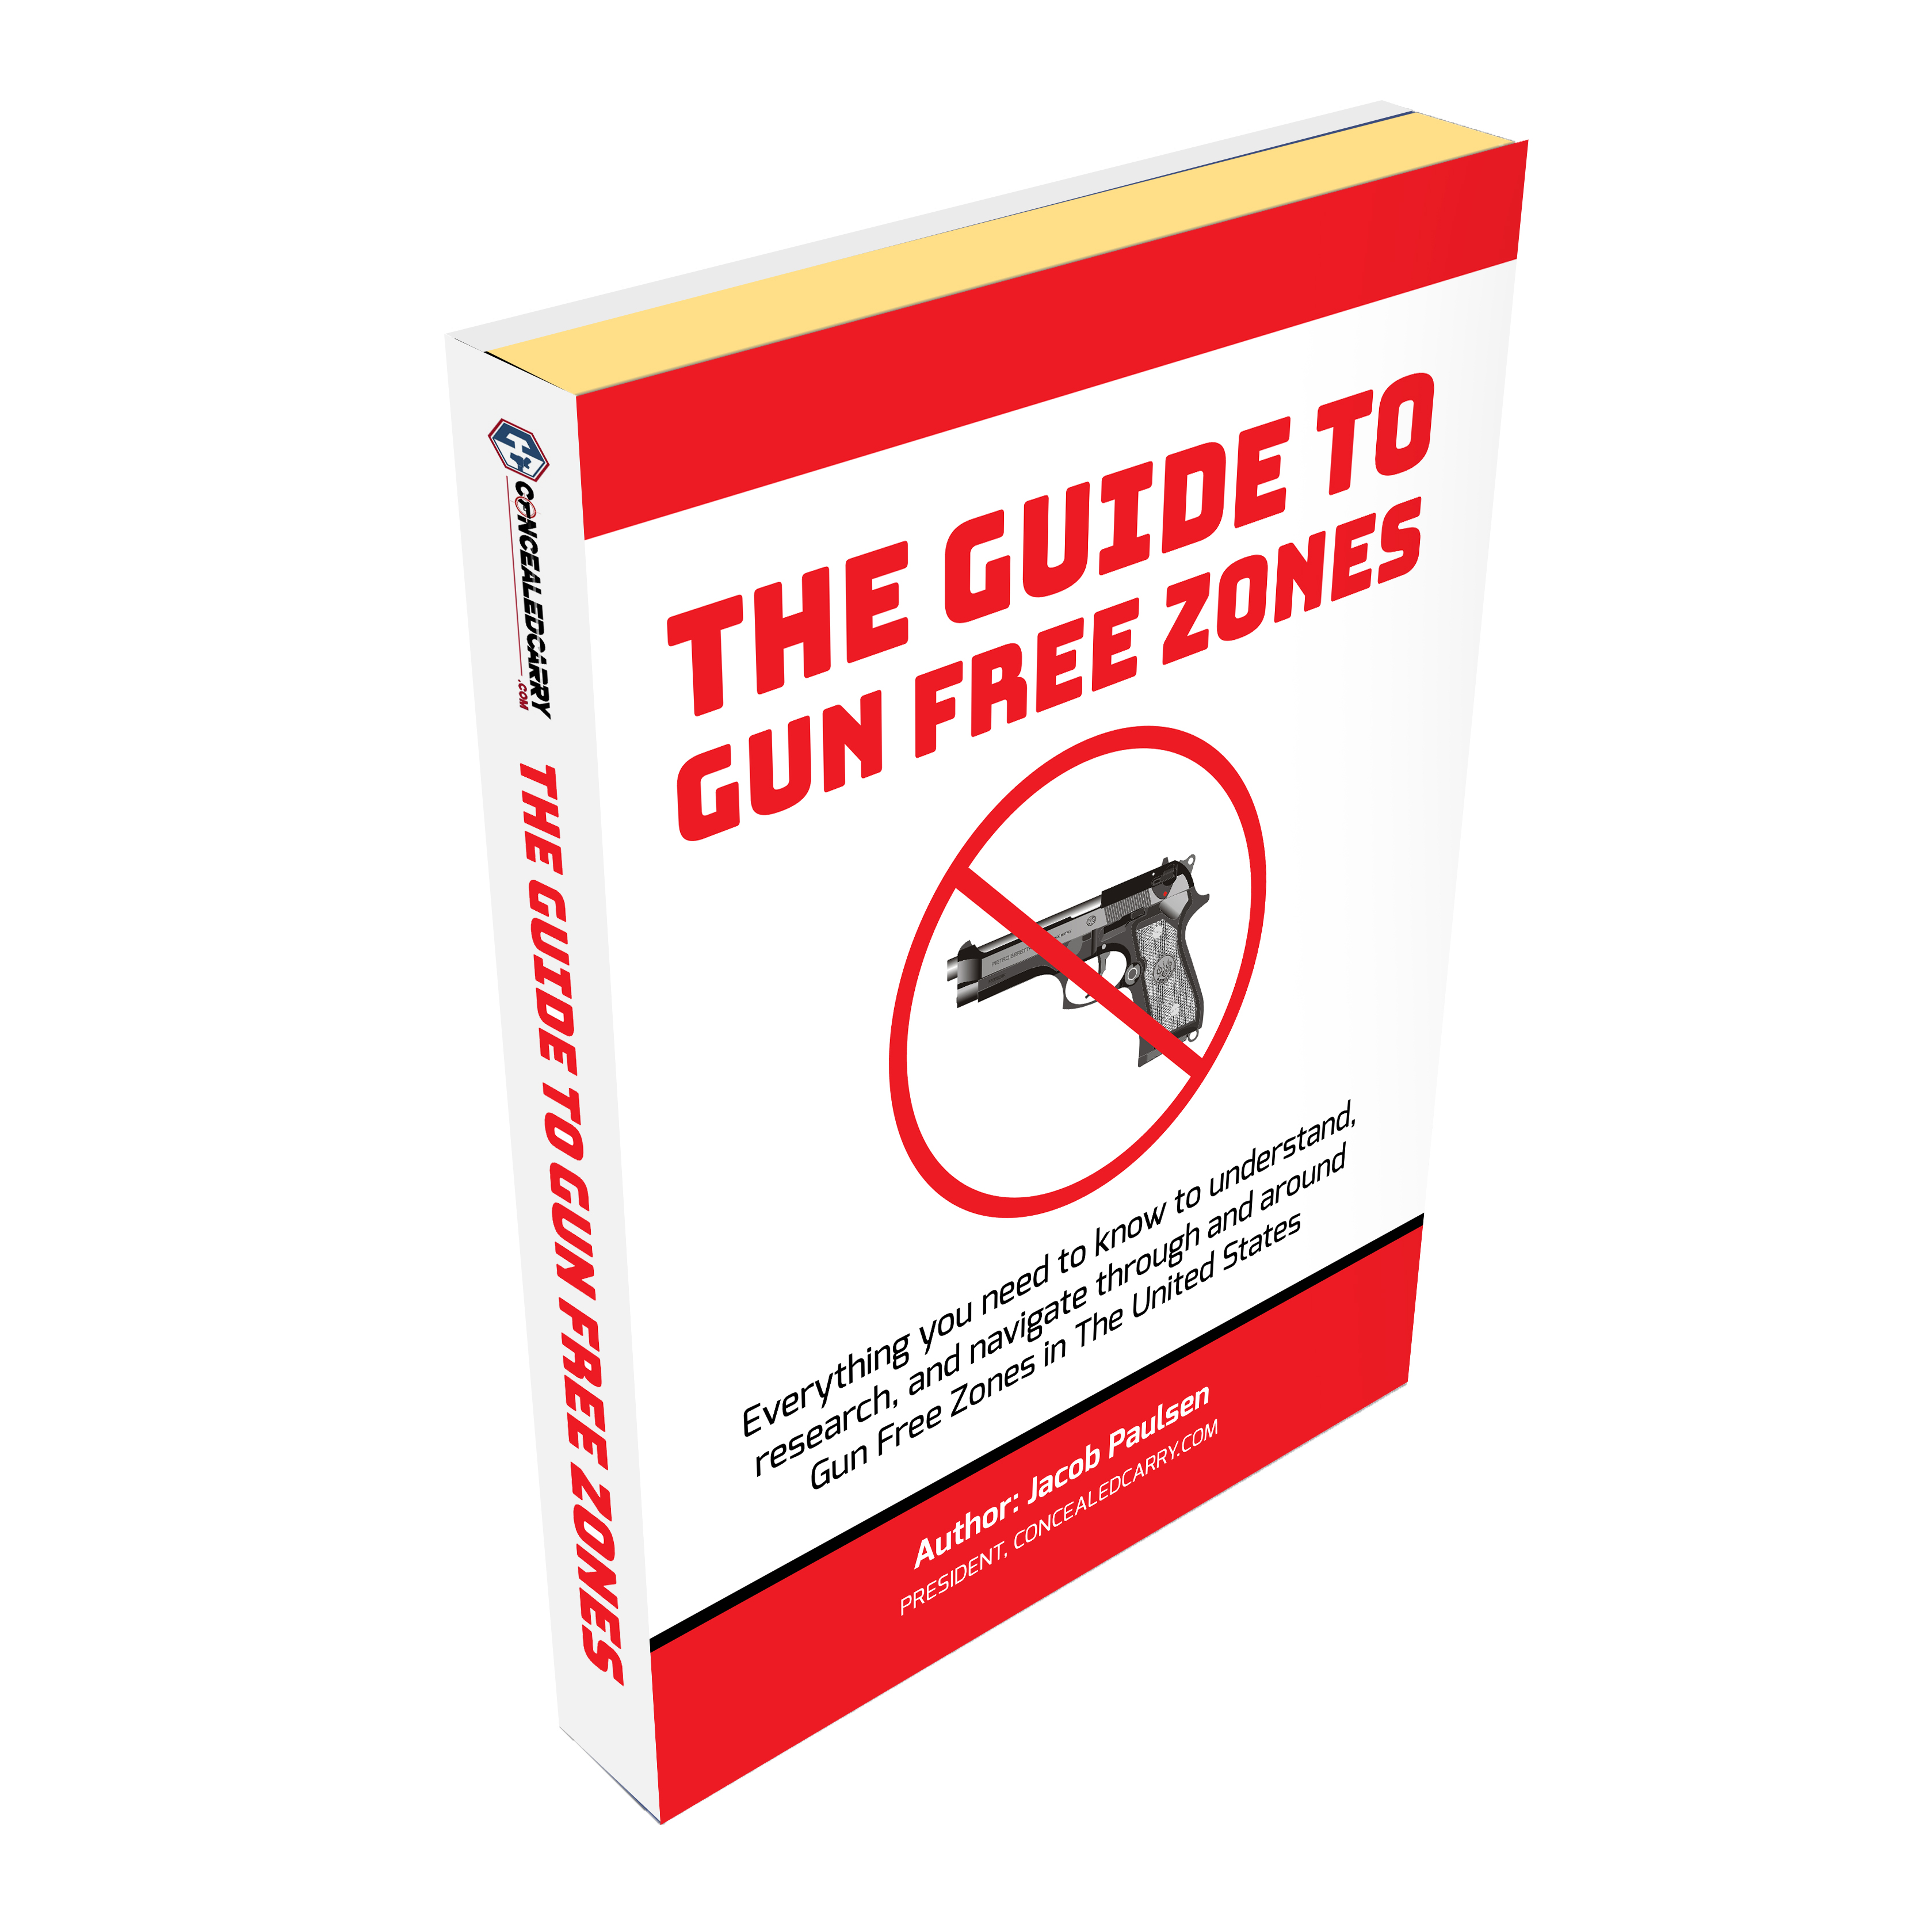 Online concealed carry permit course 28 states concealed carry inc the difference between government and private gun free zones fandeluxe Choice Image